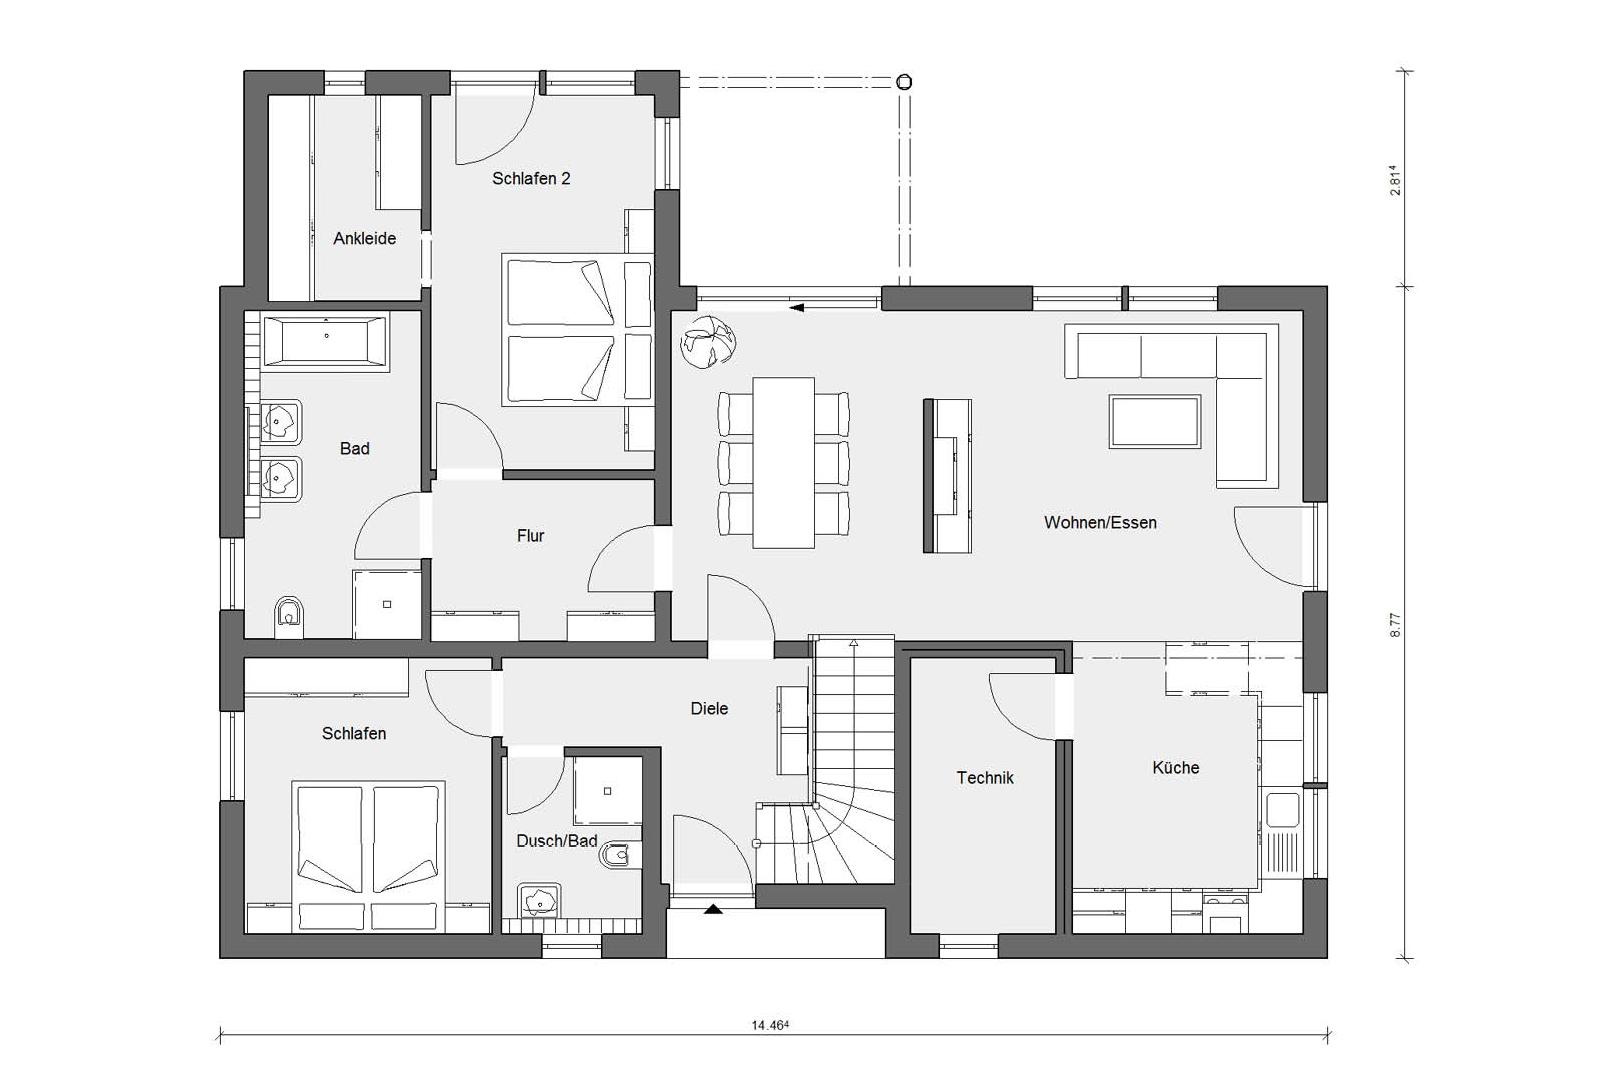 Floor plan ground floor E 15-244.1 Country house modern